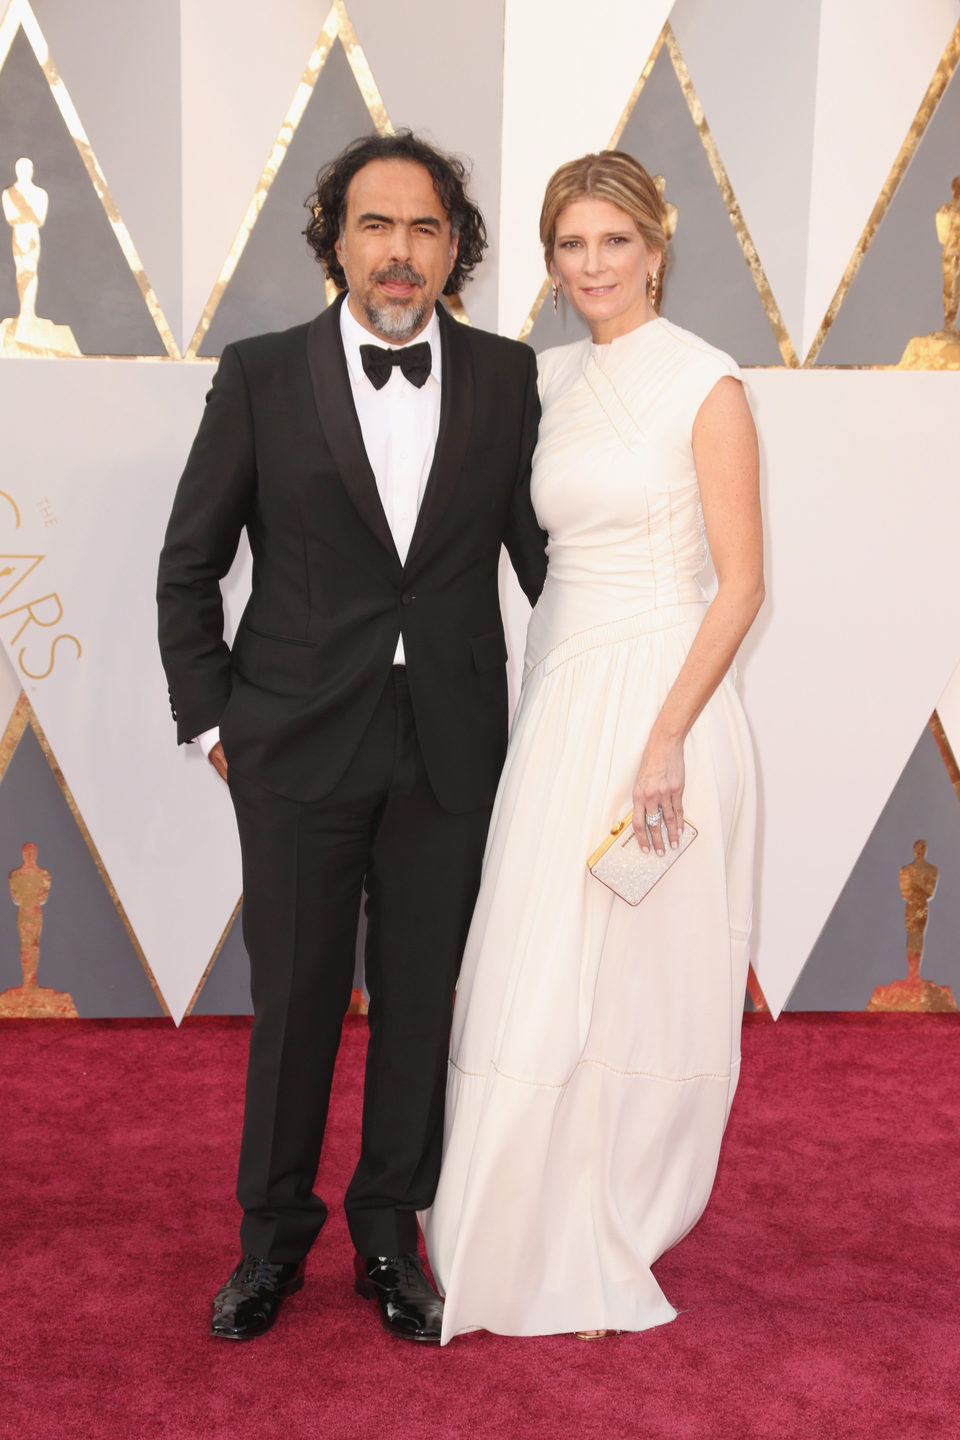 Alejandro G. Iñárritu at the Oscars 2016 red carpet